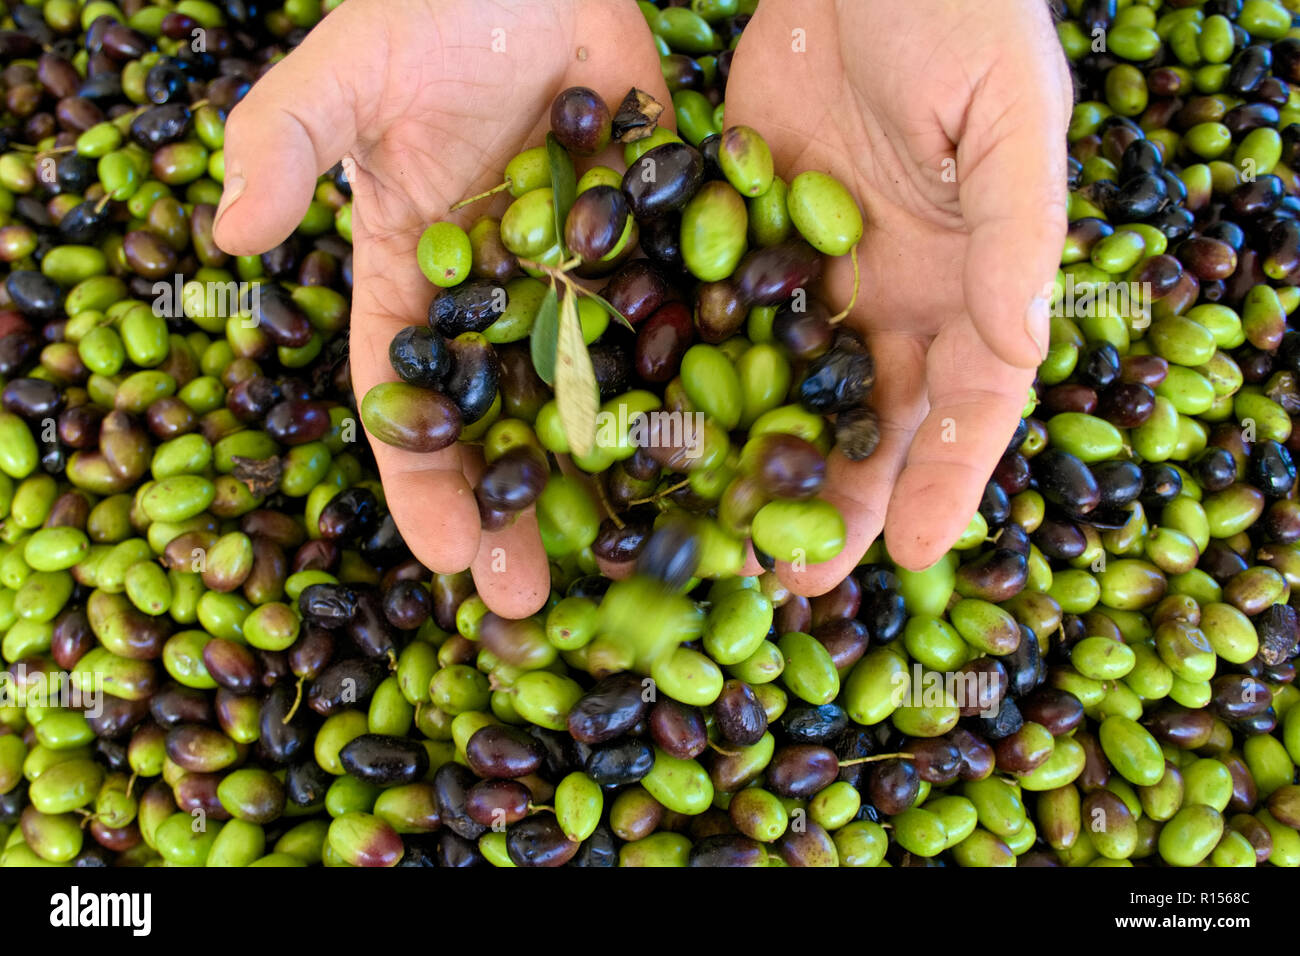 Green and black olives ready to be processed at the mill to get the olive oil in the hands of the farmer Stock Photo